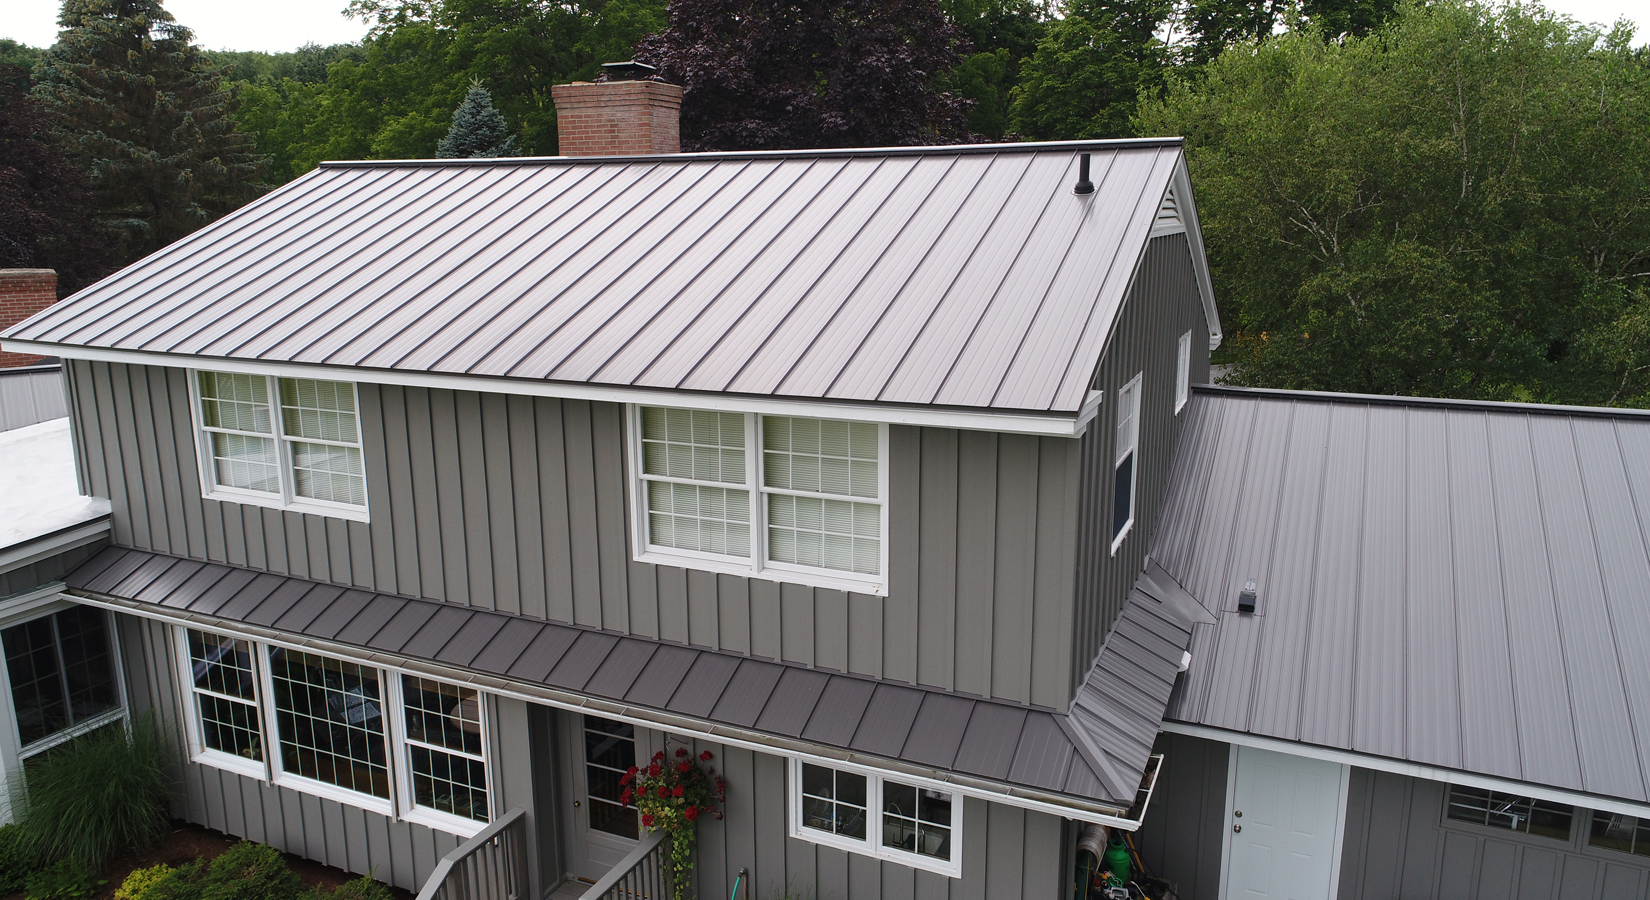 On site metal roof, metal roofing, metal roof syracuse, Onsite metal roof, seamless metal roof